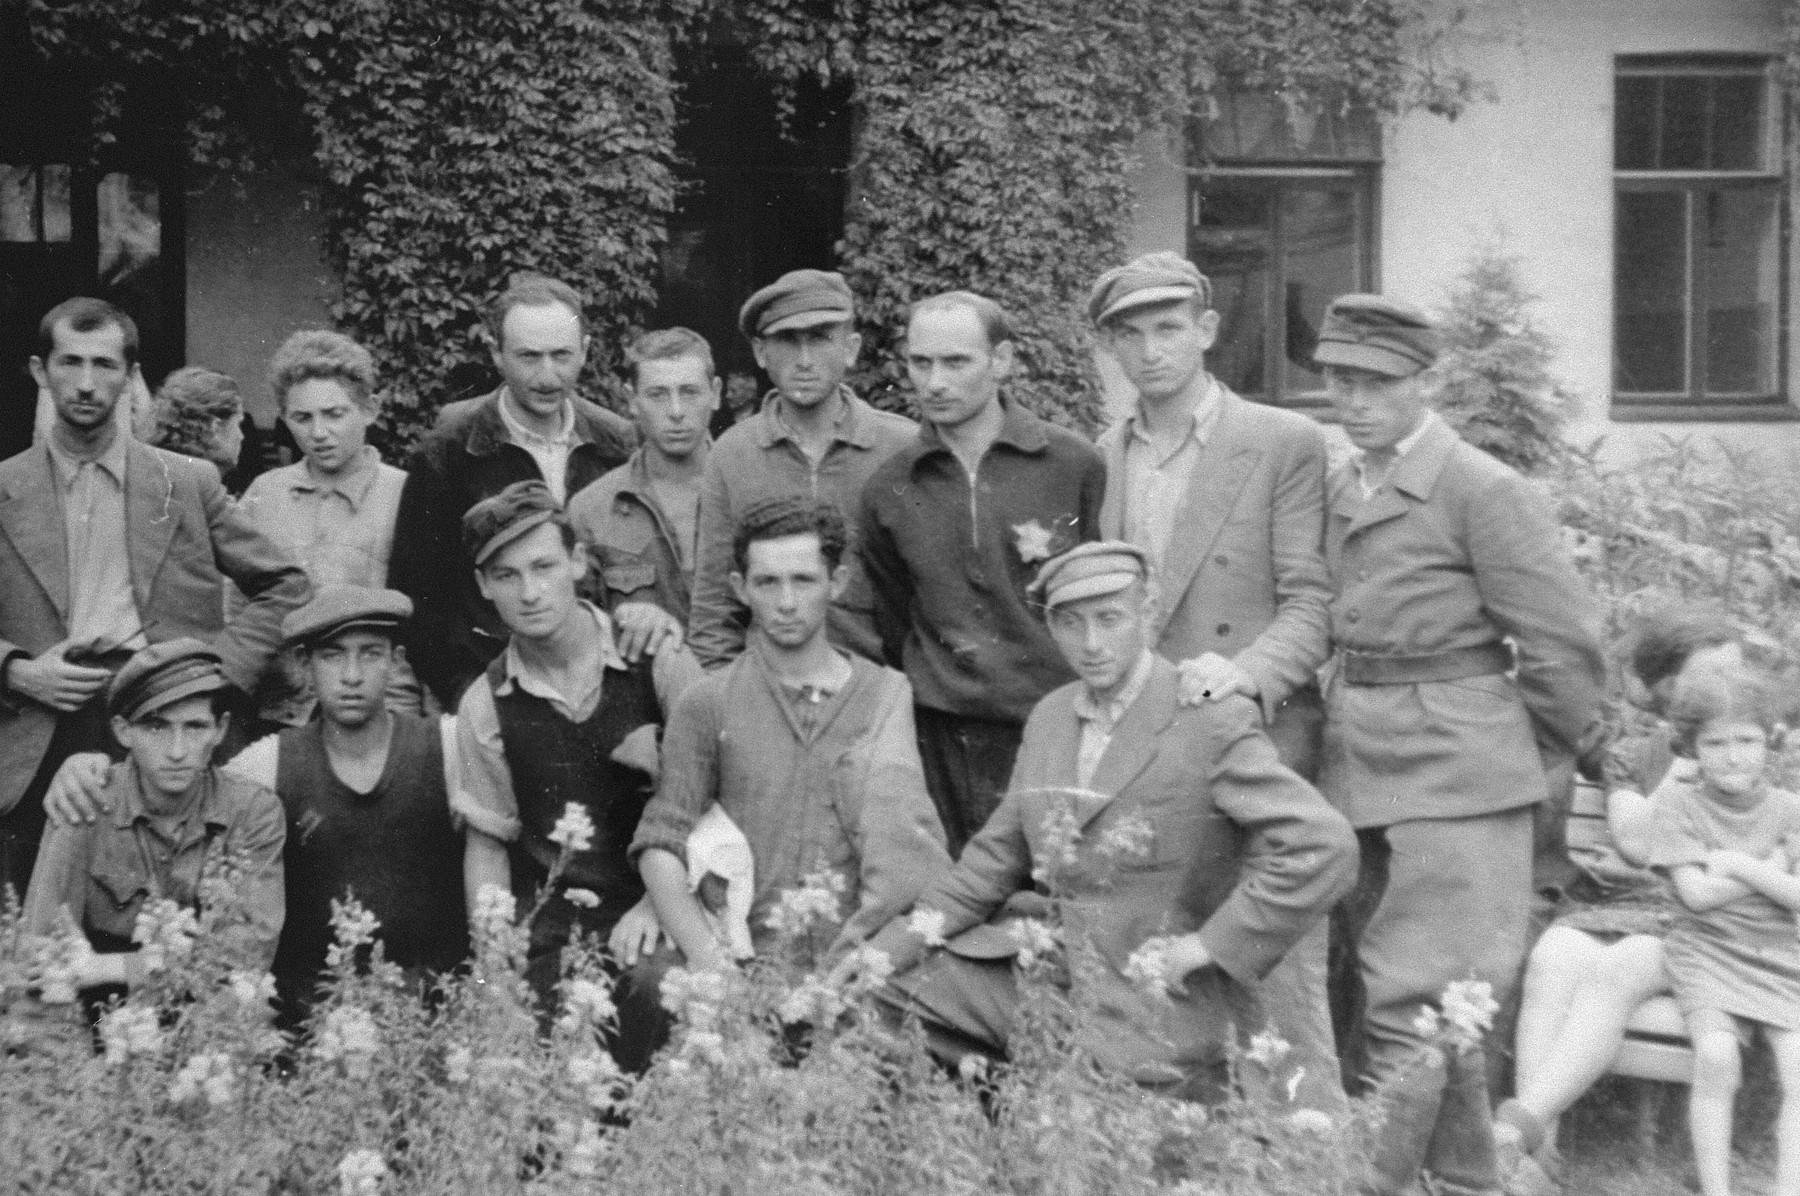 Survivors of the Kovno ghetto meet few days after the liberation.